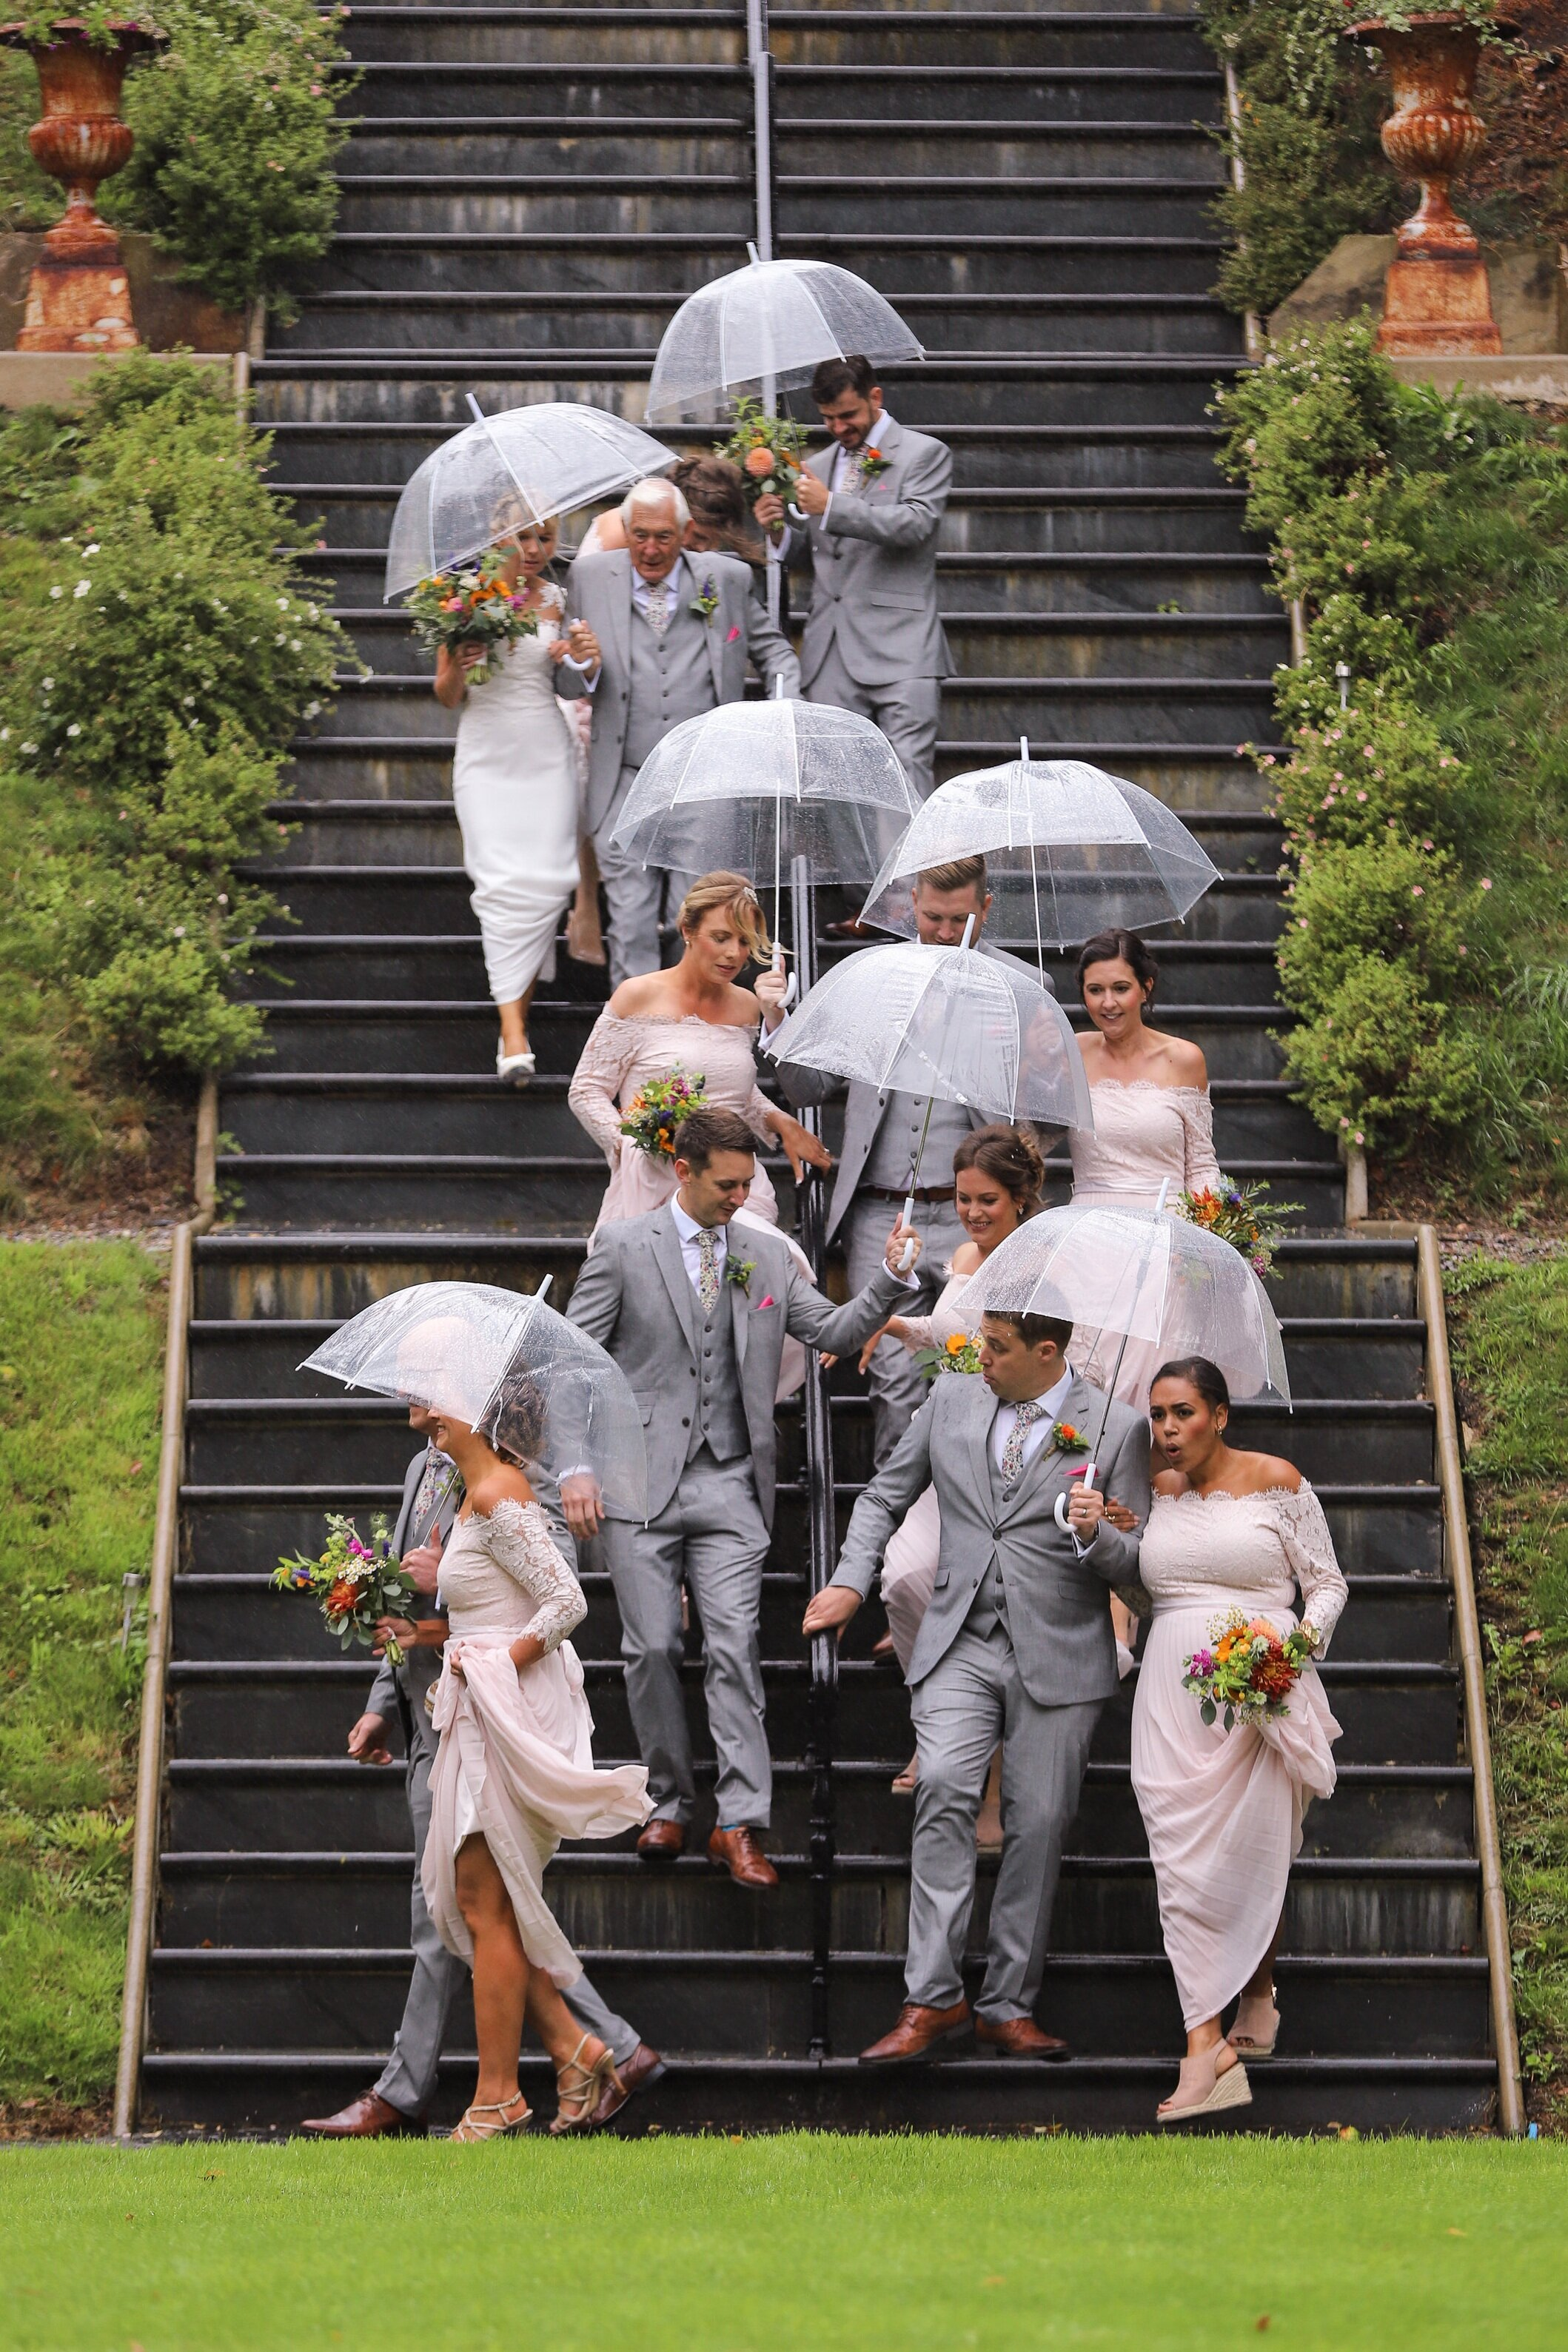 tracey-estate-wedding-the-planning-lounge